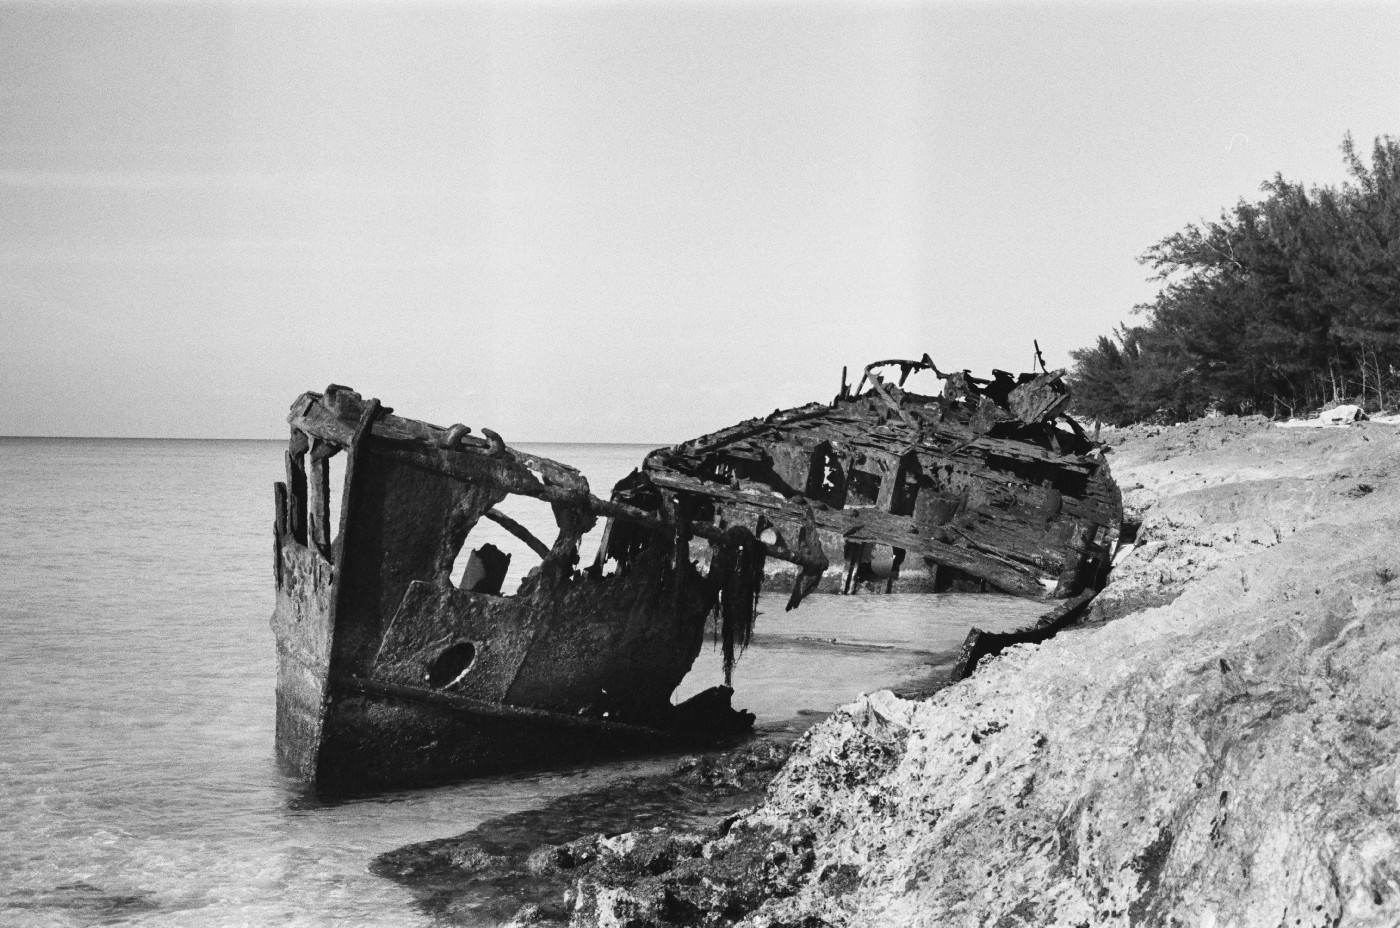 Black and white photo of an old shipwreck on a beach